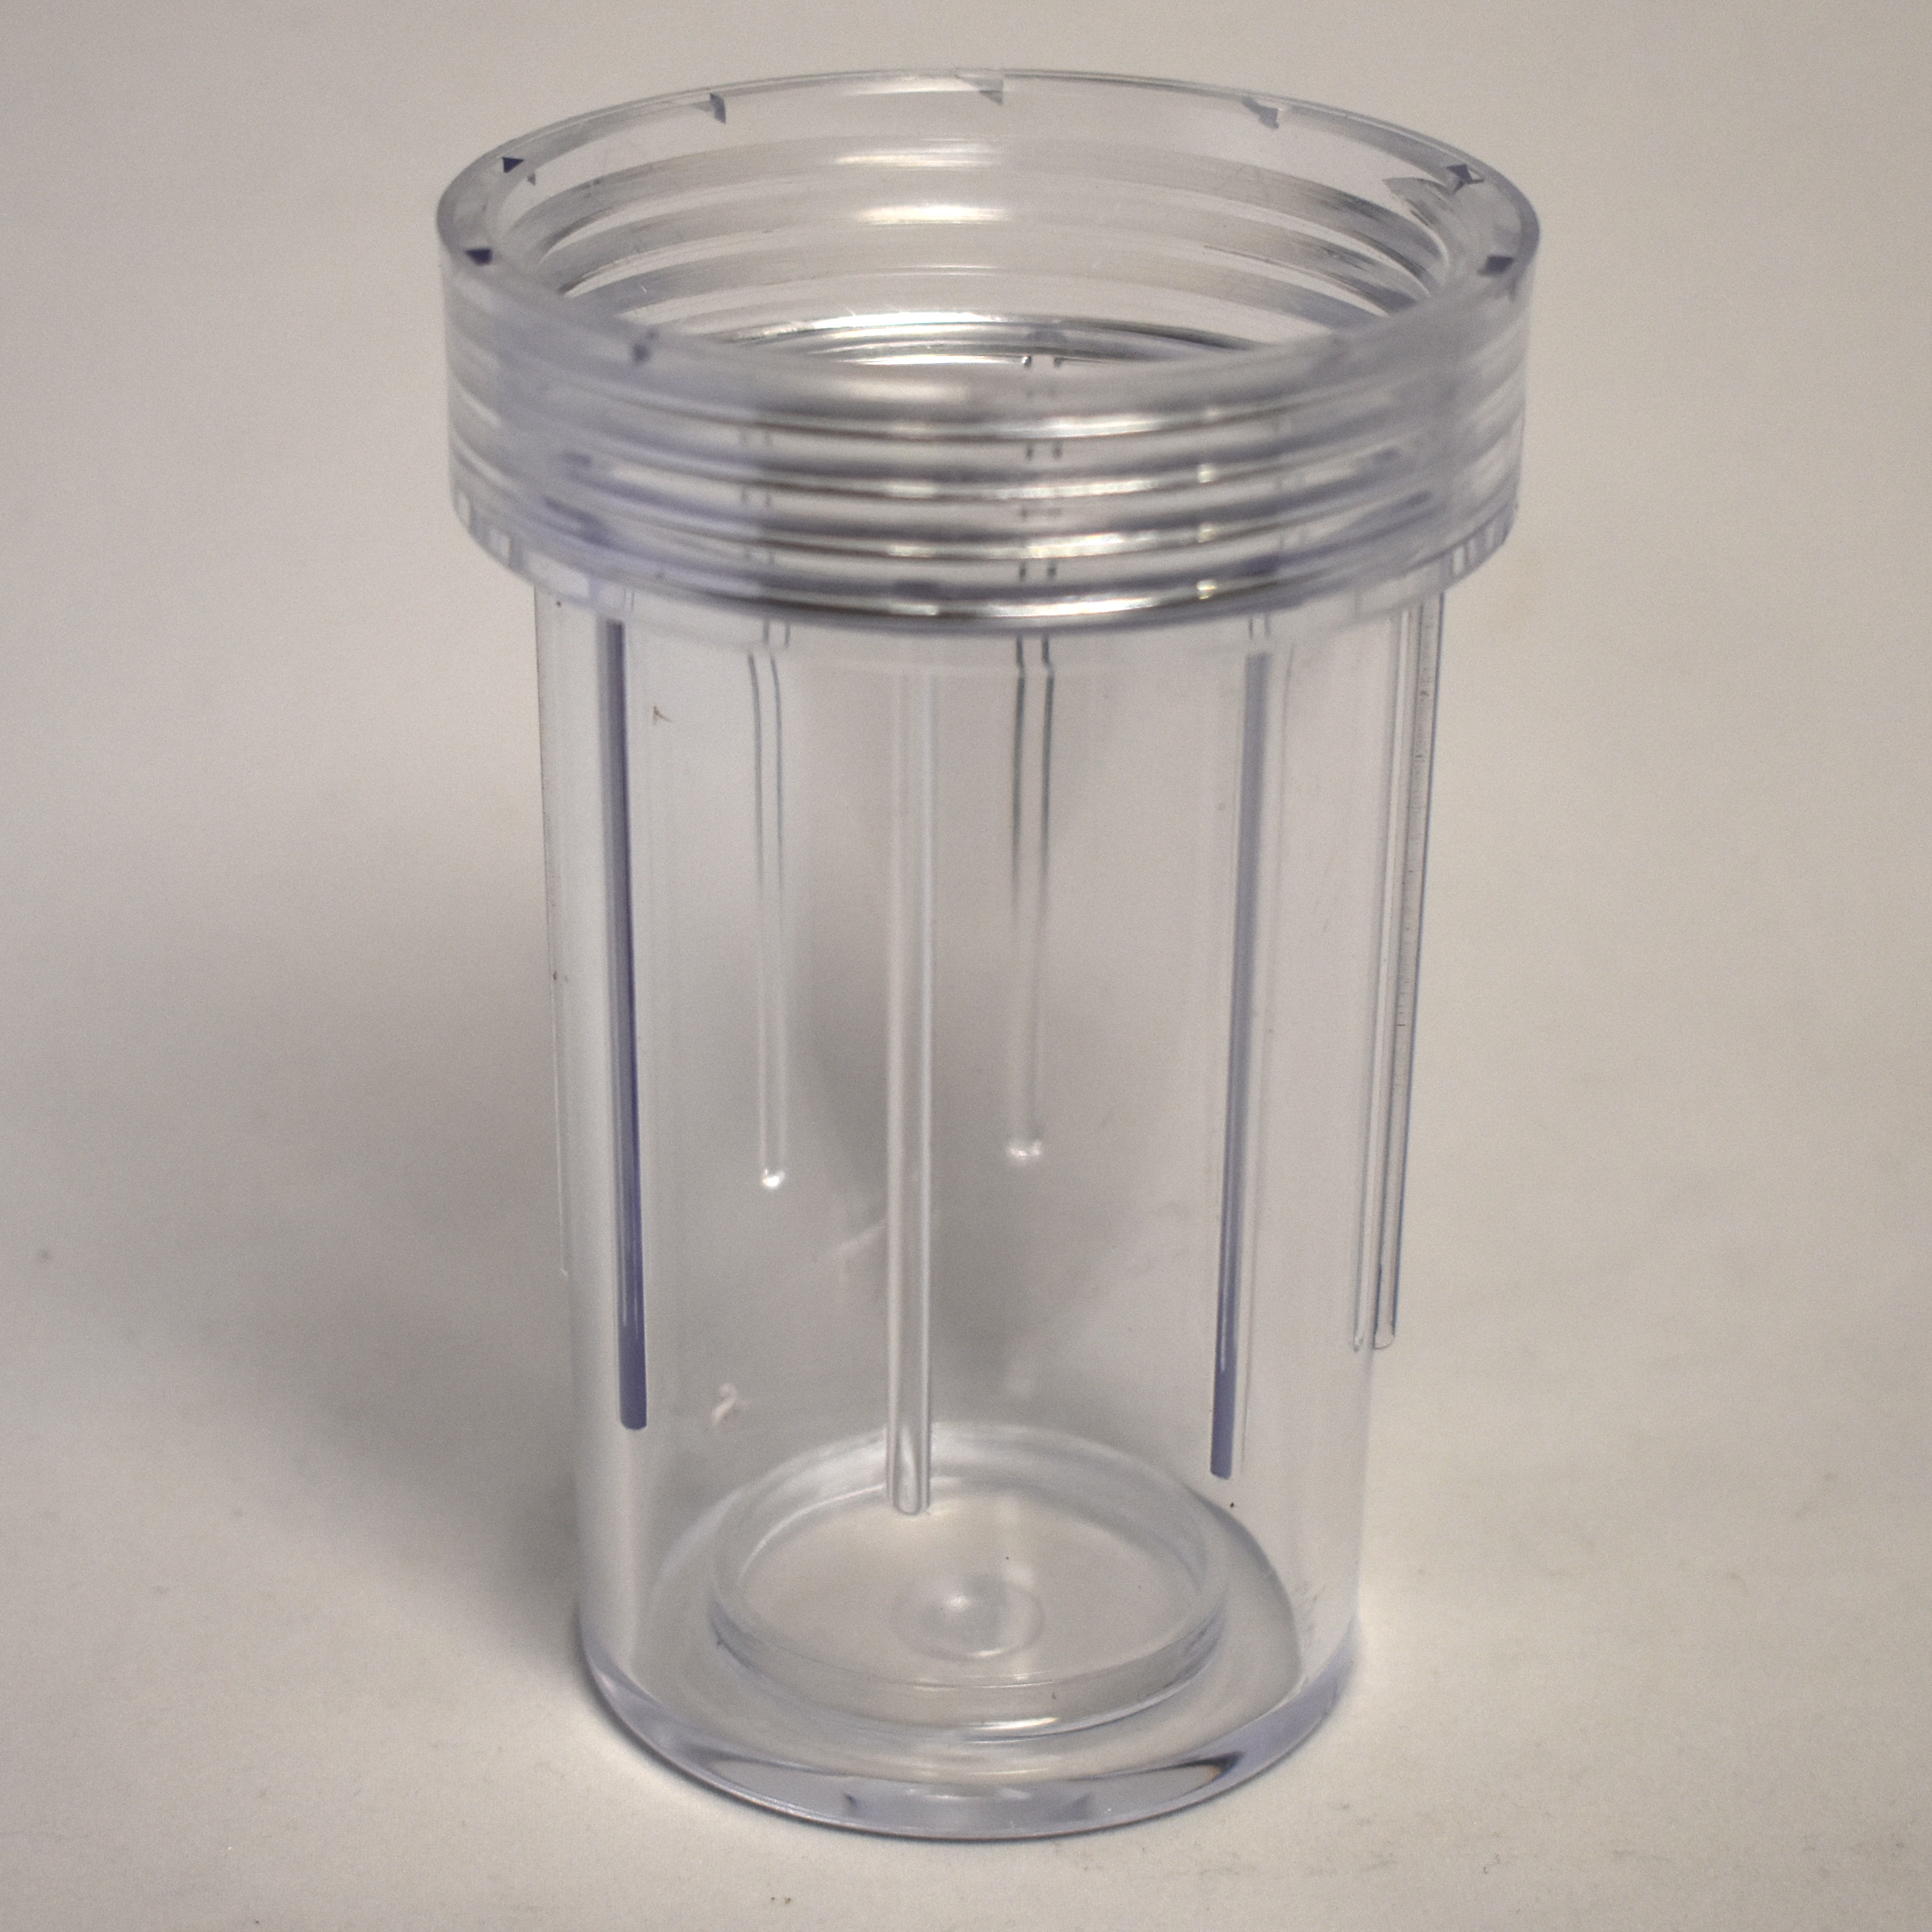 "Clear Bowl for GNC 3/4"" or 1"" Suction Filter - LS-210100"